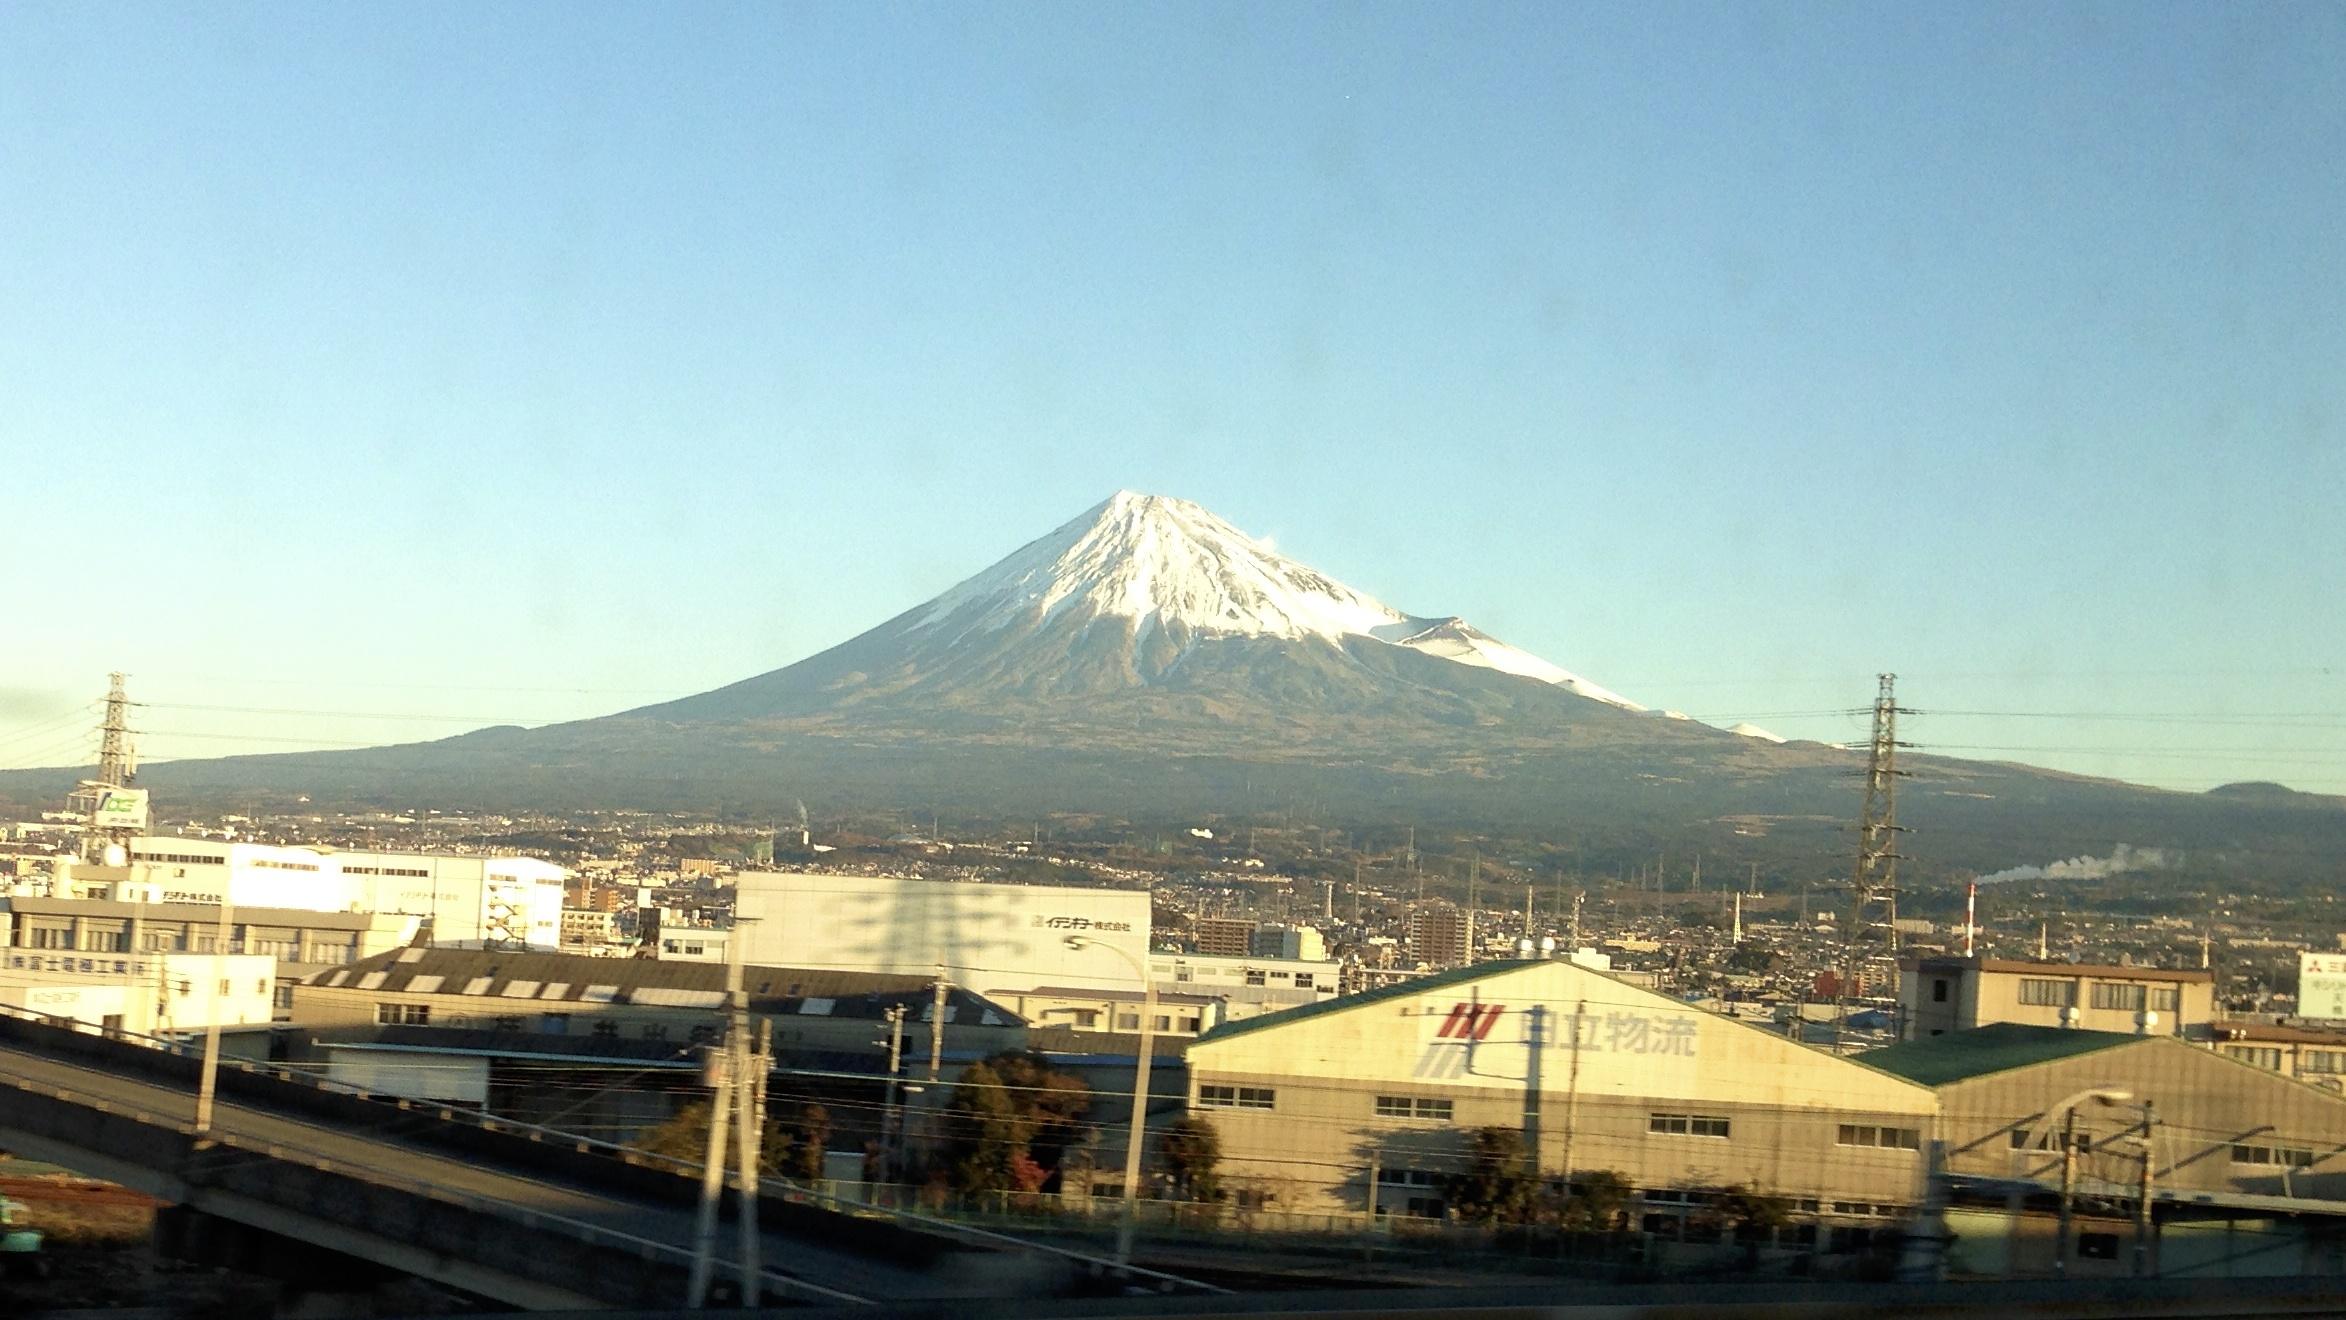 Fuji-san as seen on the bullet train to Kyoto